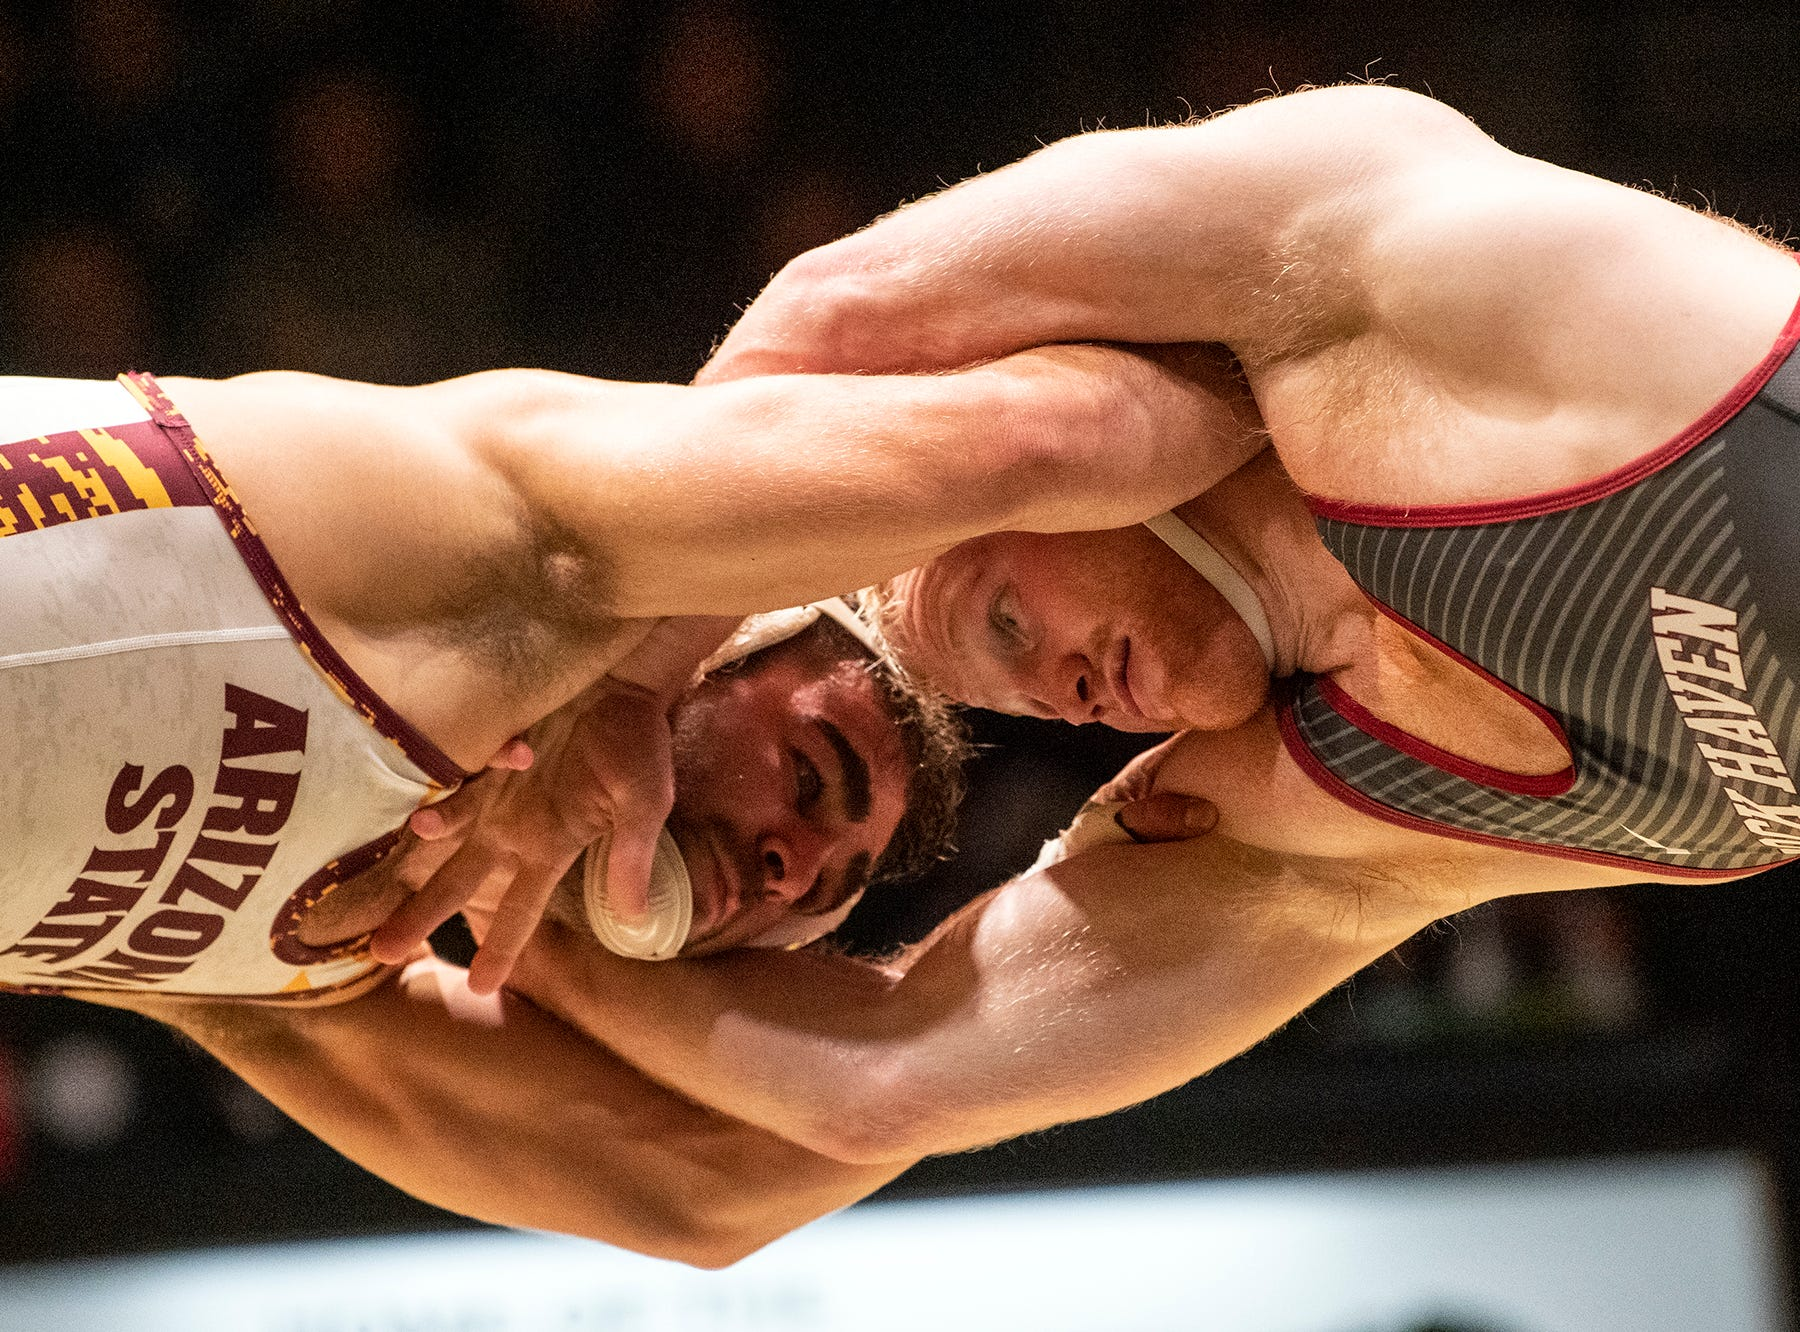 Lock Haven's Chance Marsteller, right, wrestles with Arizona State's Josh Shields during the 165-pound bout at Red Lion's Fitzkee Athletic Center on Friday, Jan. 25, 2019. Shields (No. 5) beat Marsteller (No. 4), 2-1, in a tiebreaker. No. 22 Lock Haven upset No. 12 Arizona State, 23-14, in the first ever 'Rumble in the Jungle.'